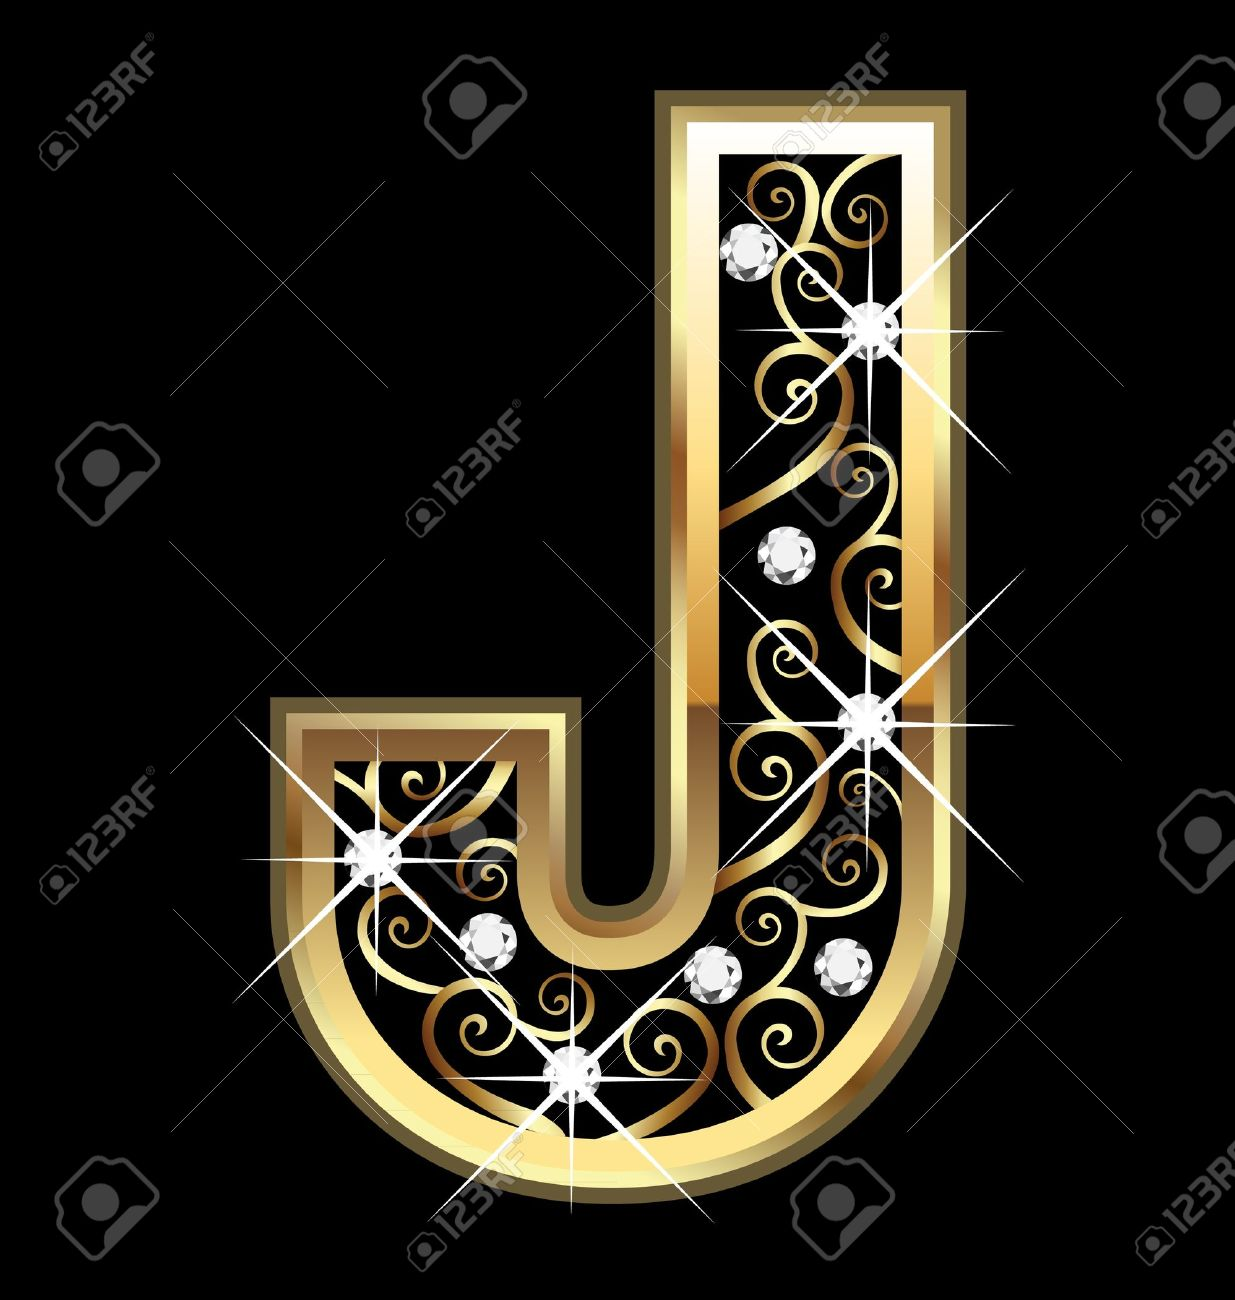 J Gold Letter With Swirly Ornaments Royalty Free Cliparts, Vectors ...